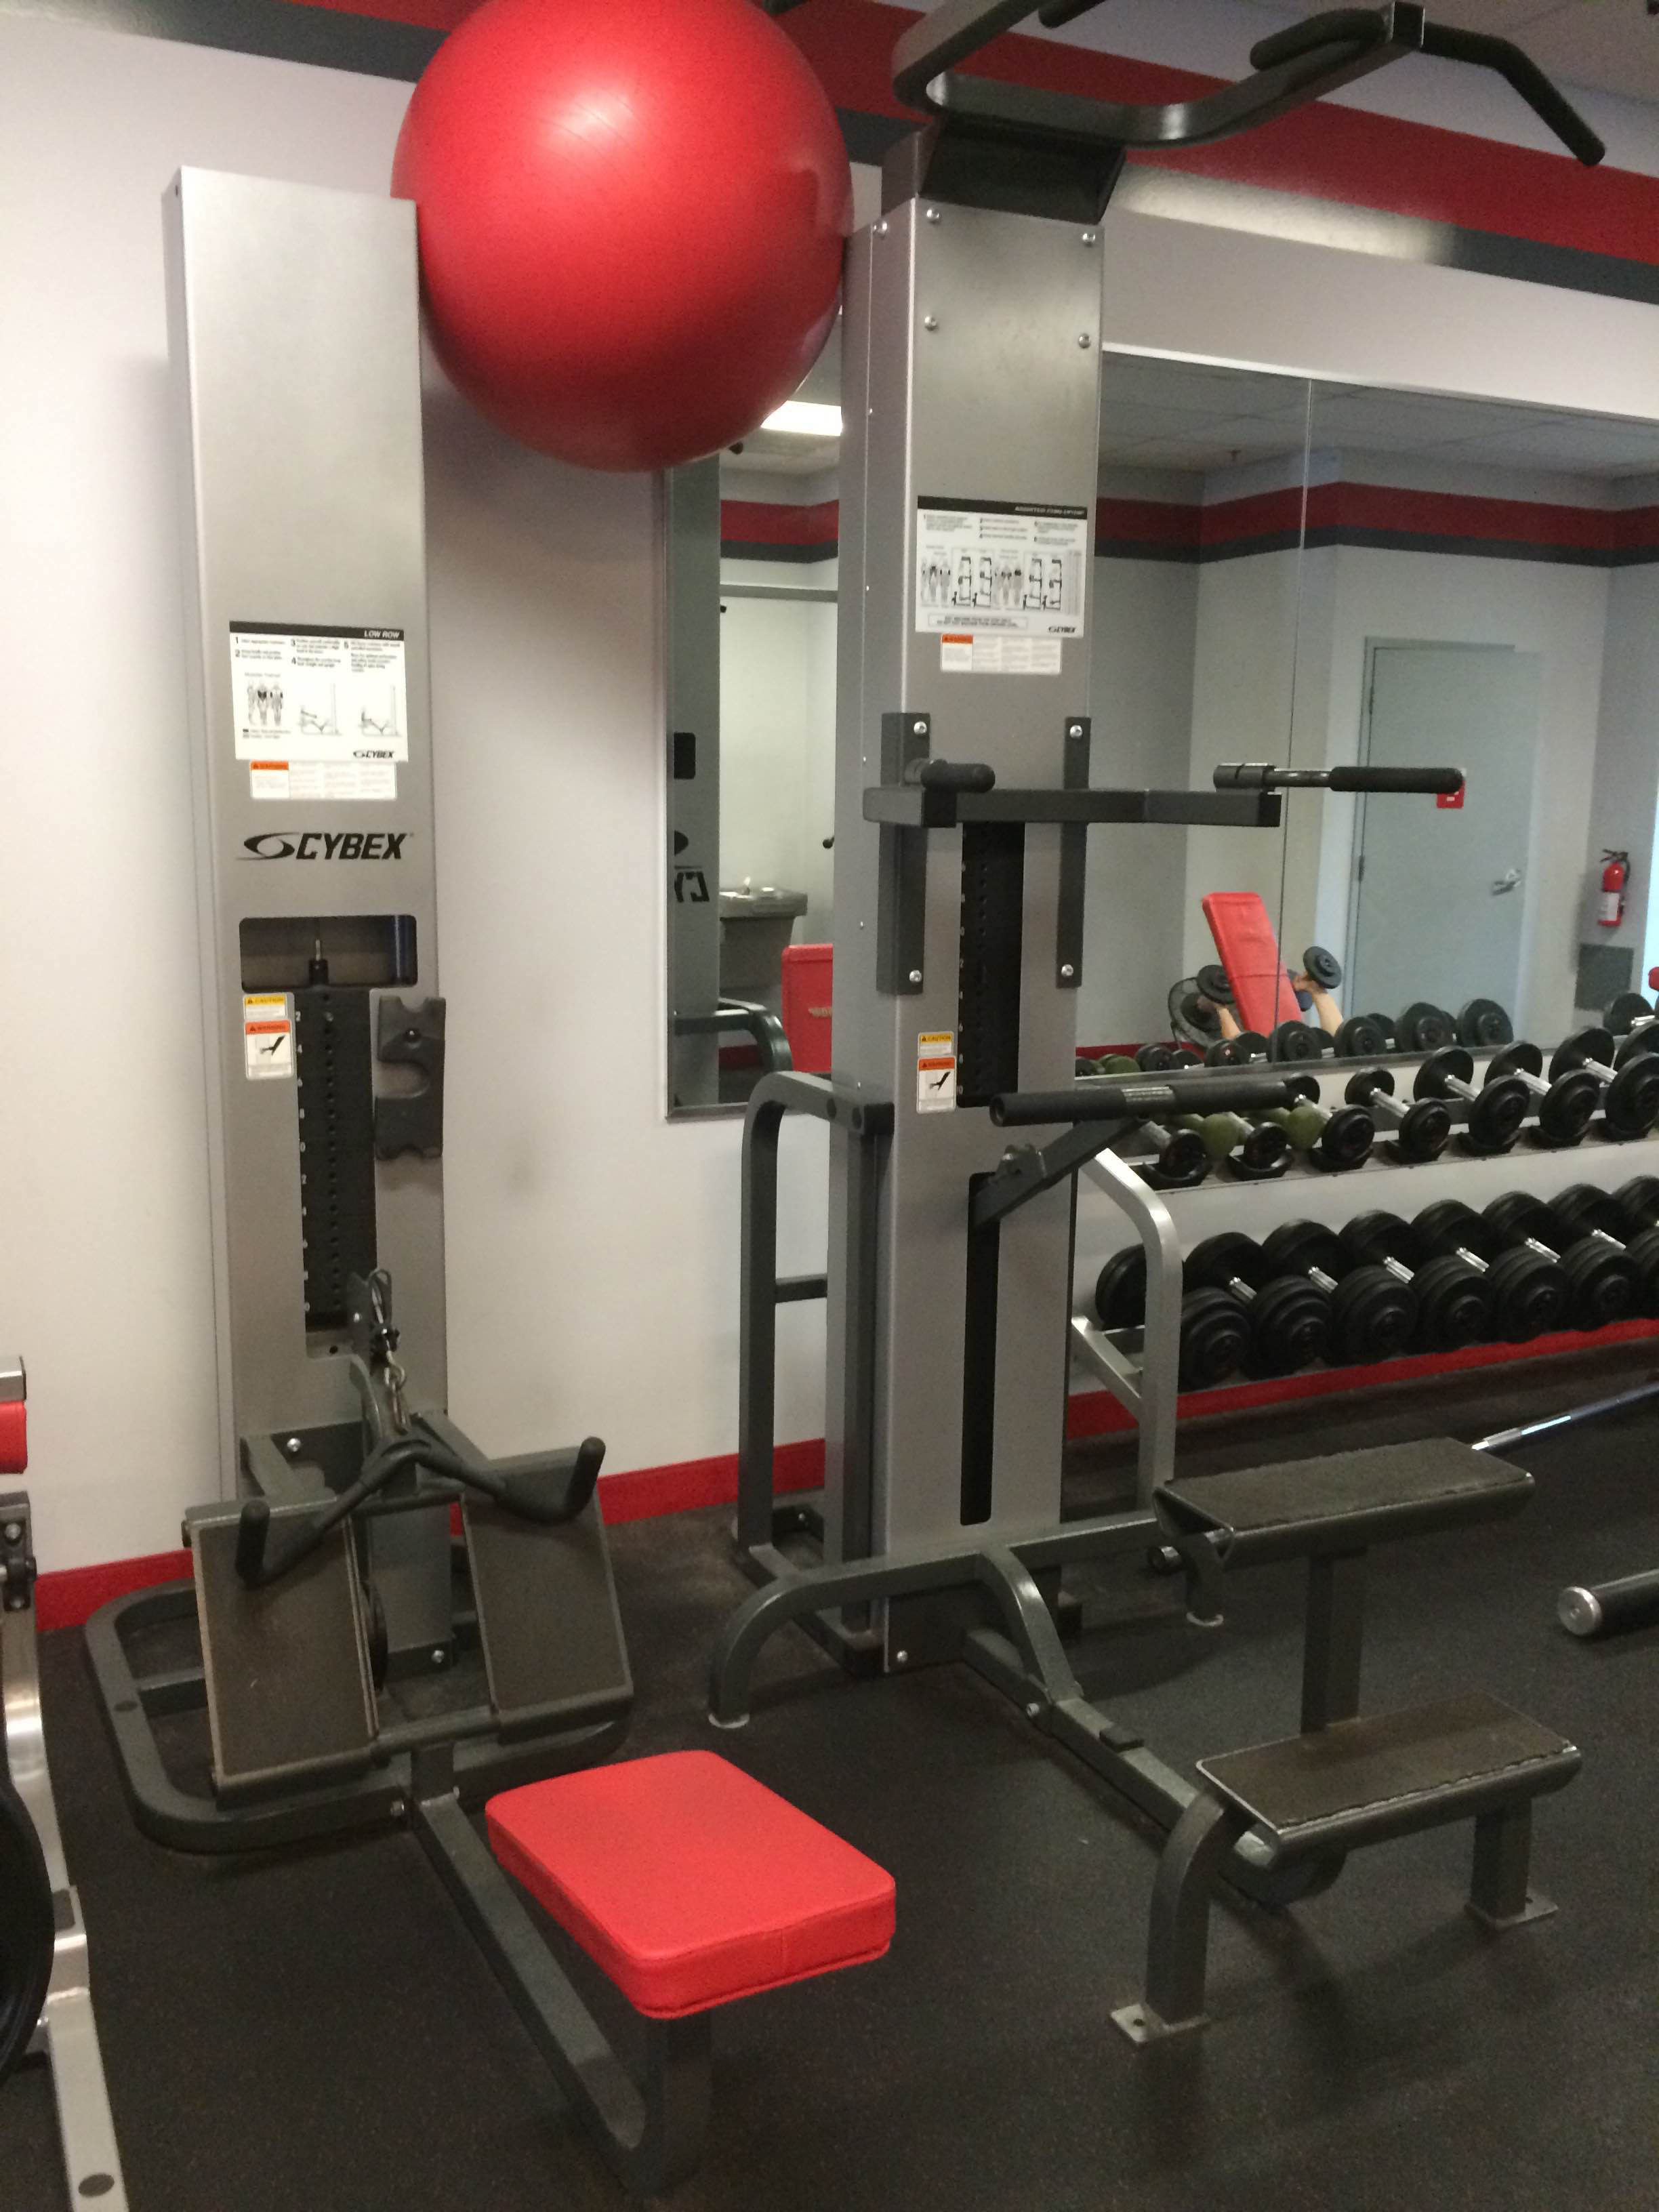 Midwest Used Fitness Equipment Cybex Vr3 Full Gym